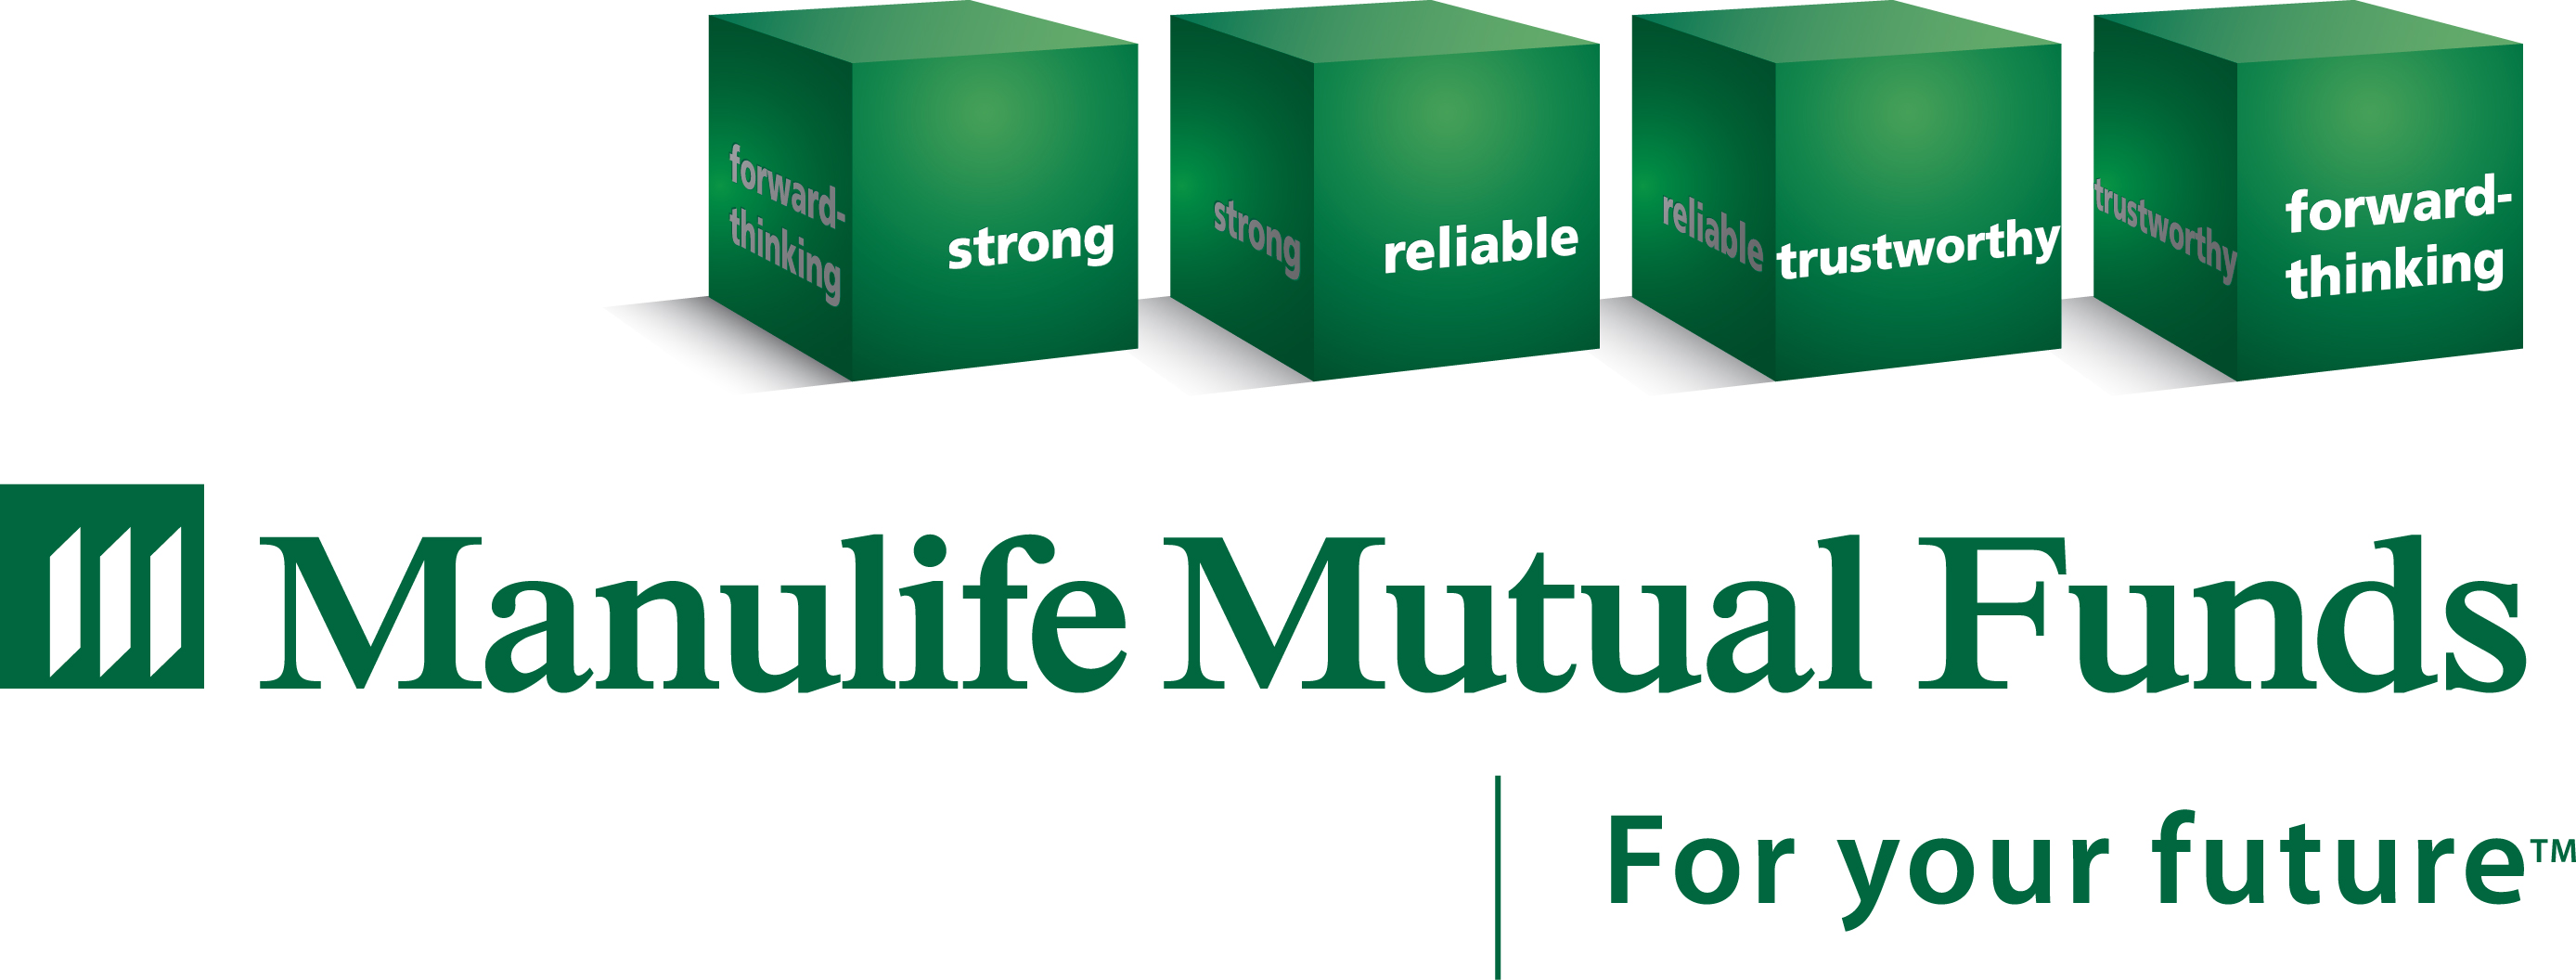 Manulife Mutual Funds